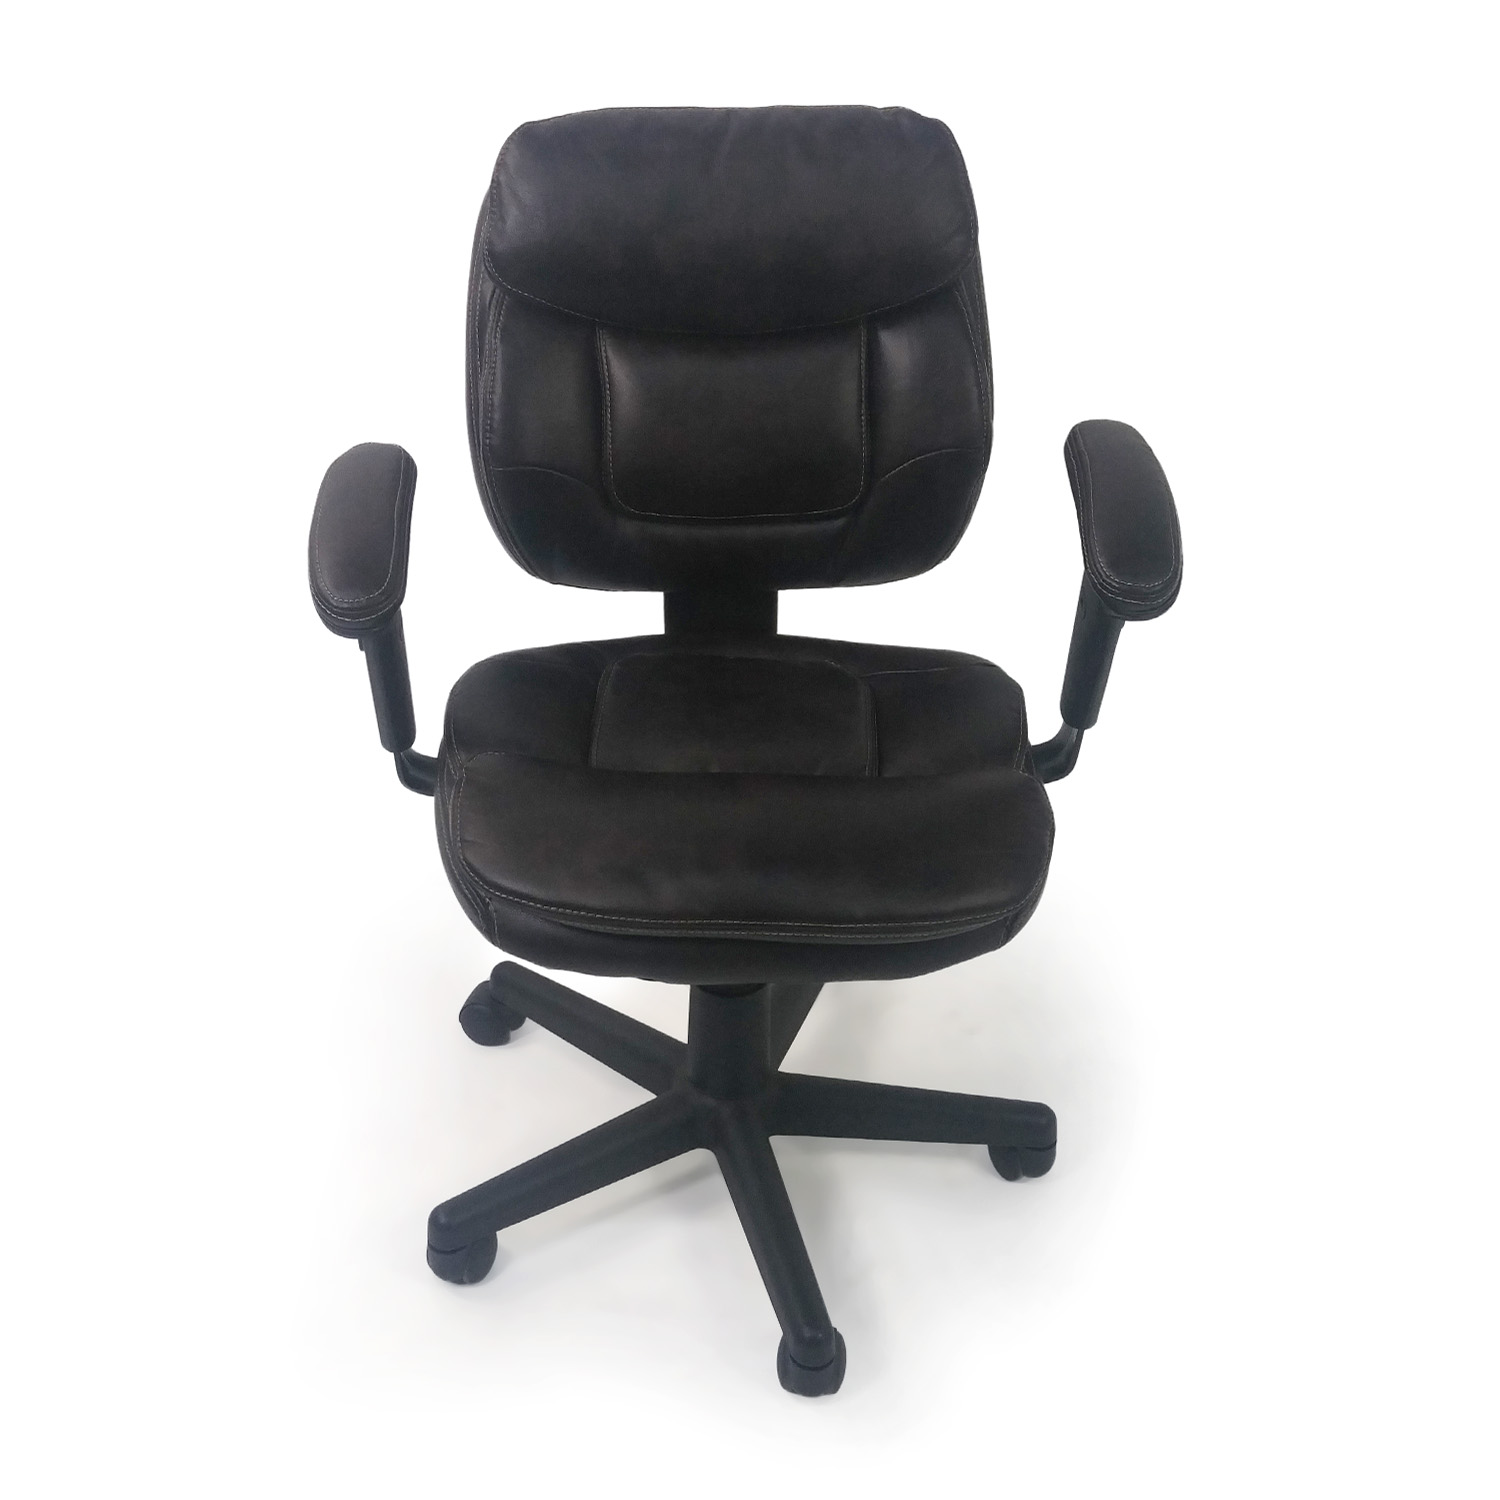 Faux Leather Chair 86 Off Plush Faux Leather Office Chair Chairs